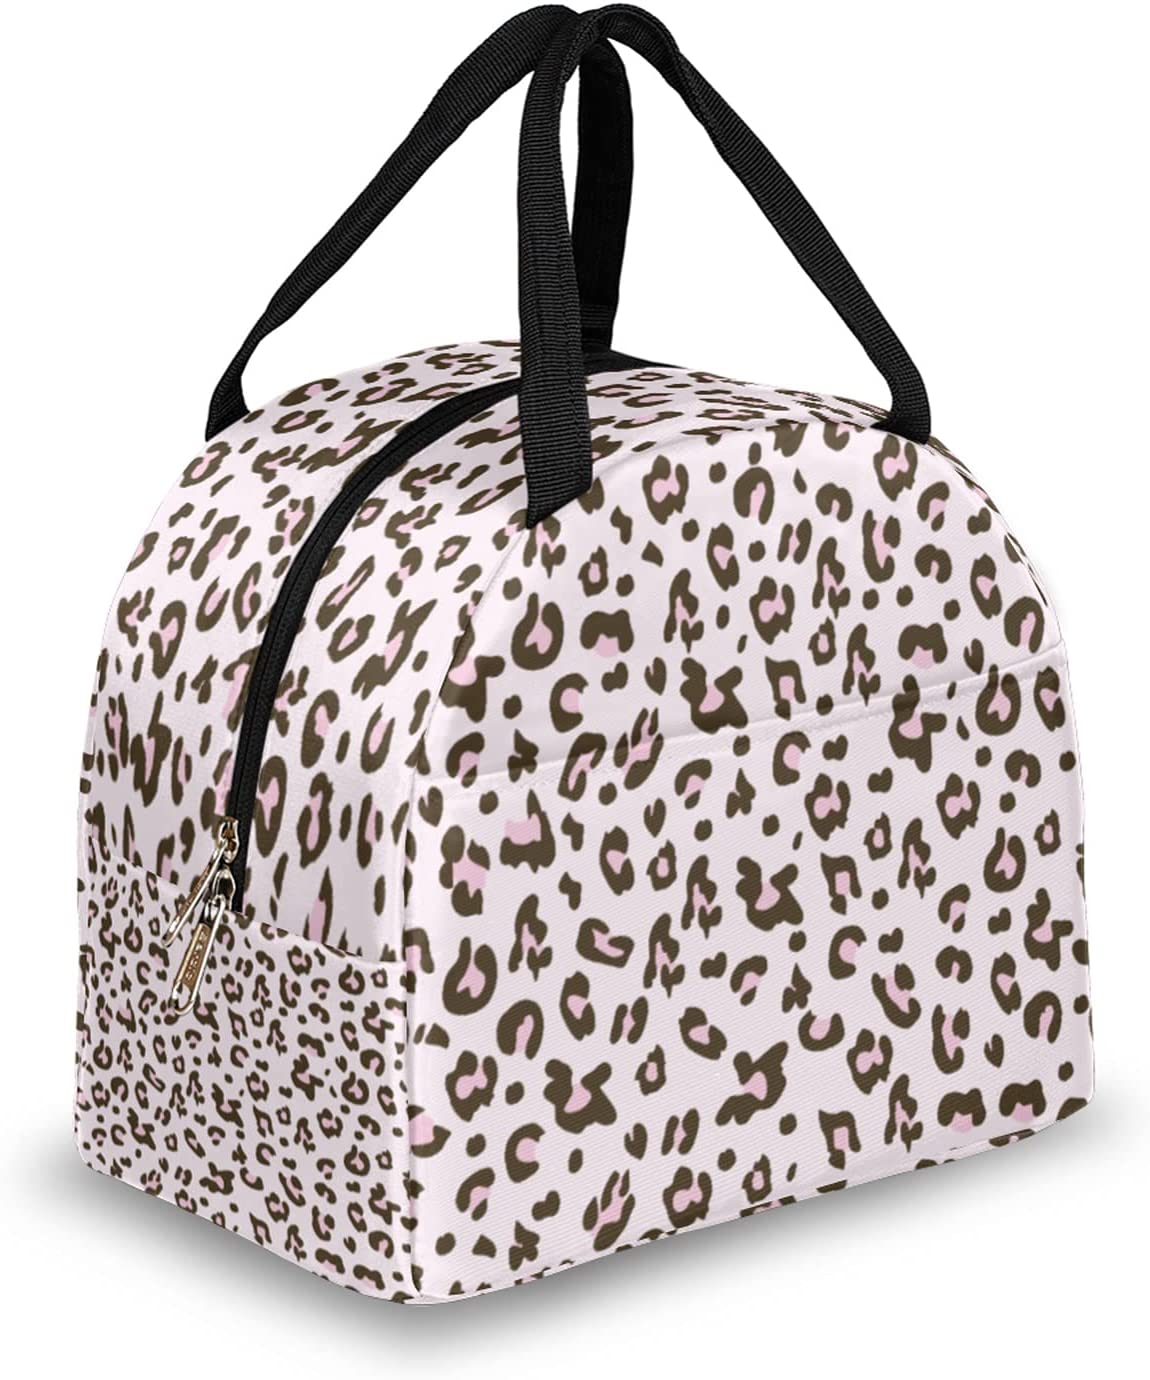 Leopard Skin Printing Pattern Lunch SEAL limited product 5 popular Lun Insulated Bag for Women